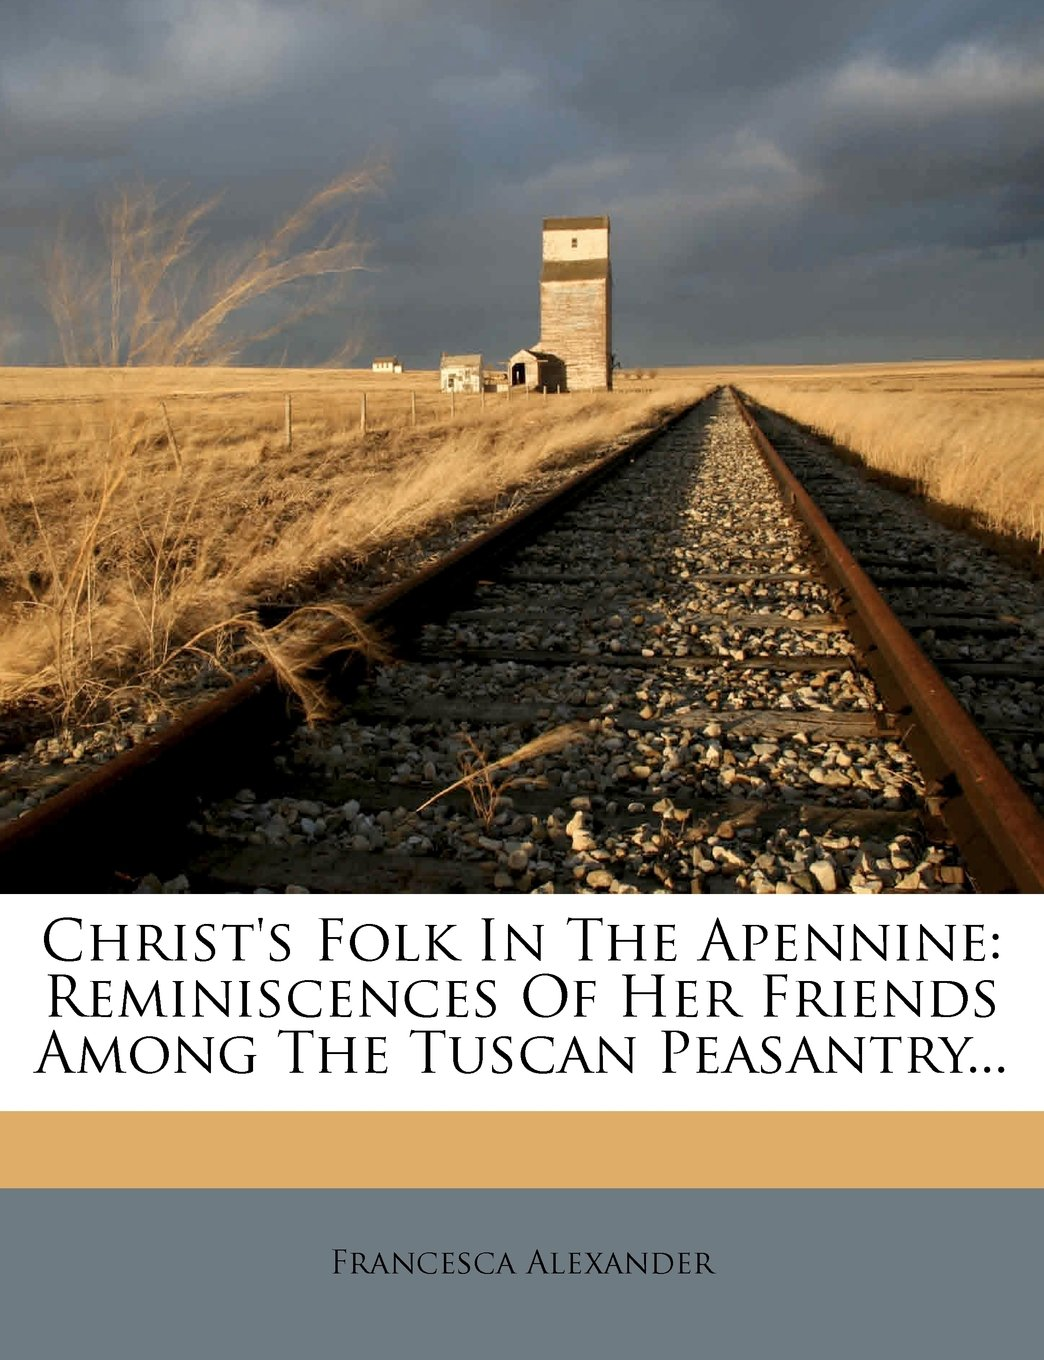 Christ's Folk In The Apennine: Reminiscences Of Her Friends Among The Tuscan Peasantry... pdf epub